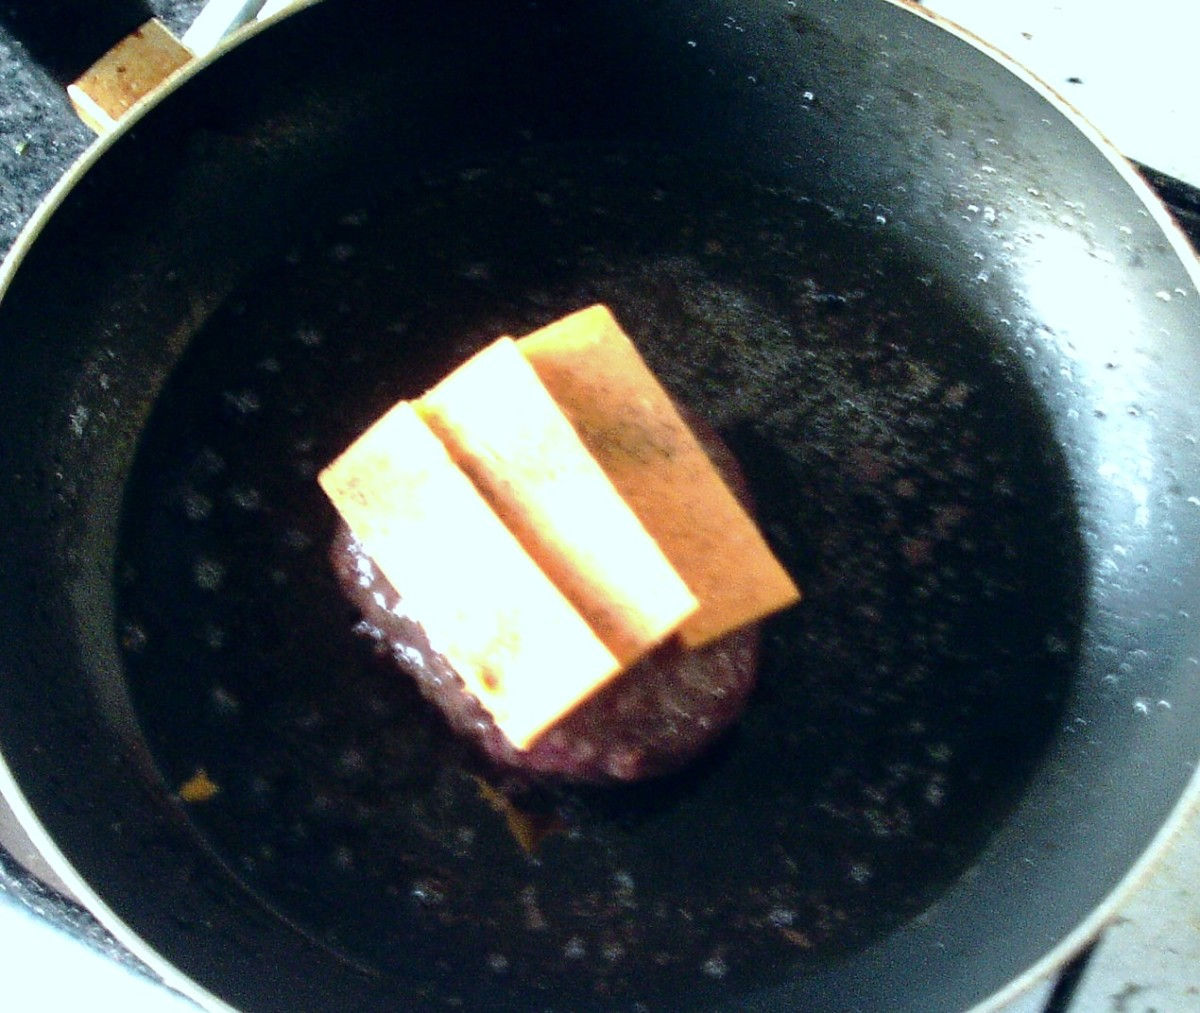 Cheese slices are laid on top of the cooked burger